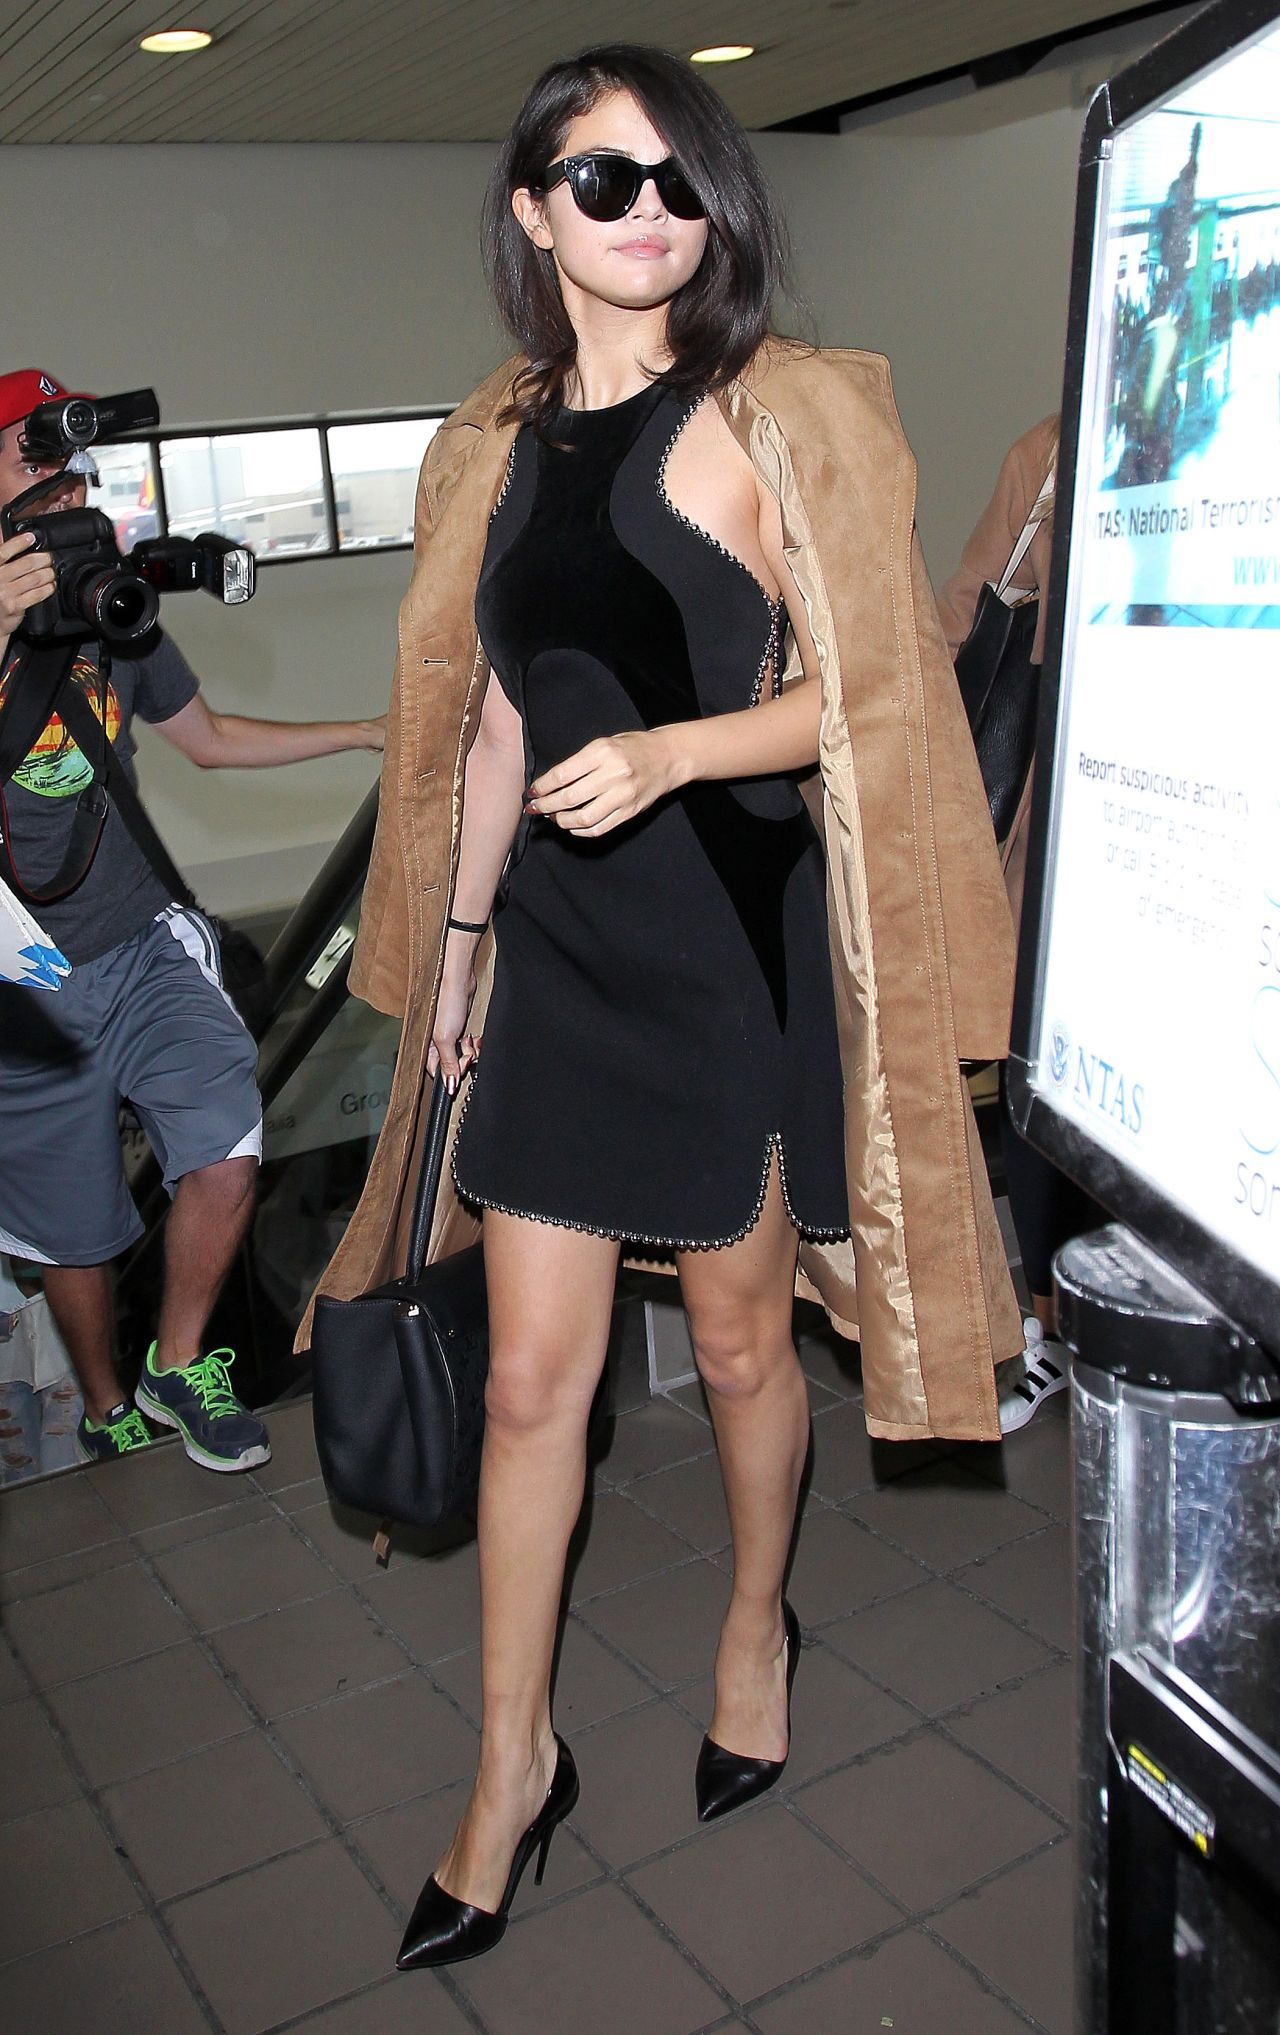 selena-gomez-arriving-at-lax-airport-in-los-angeles-october-2015_1